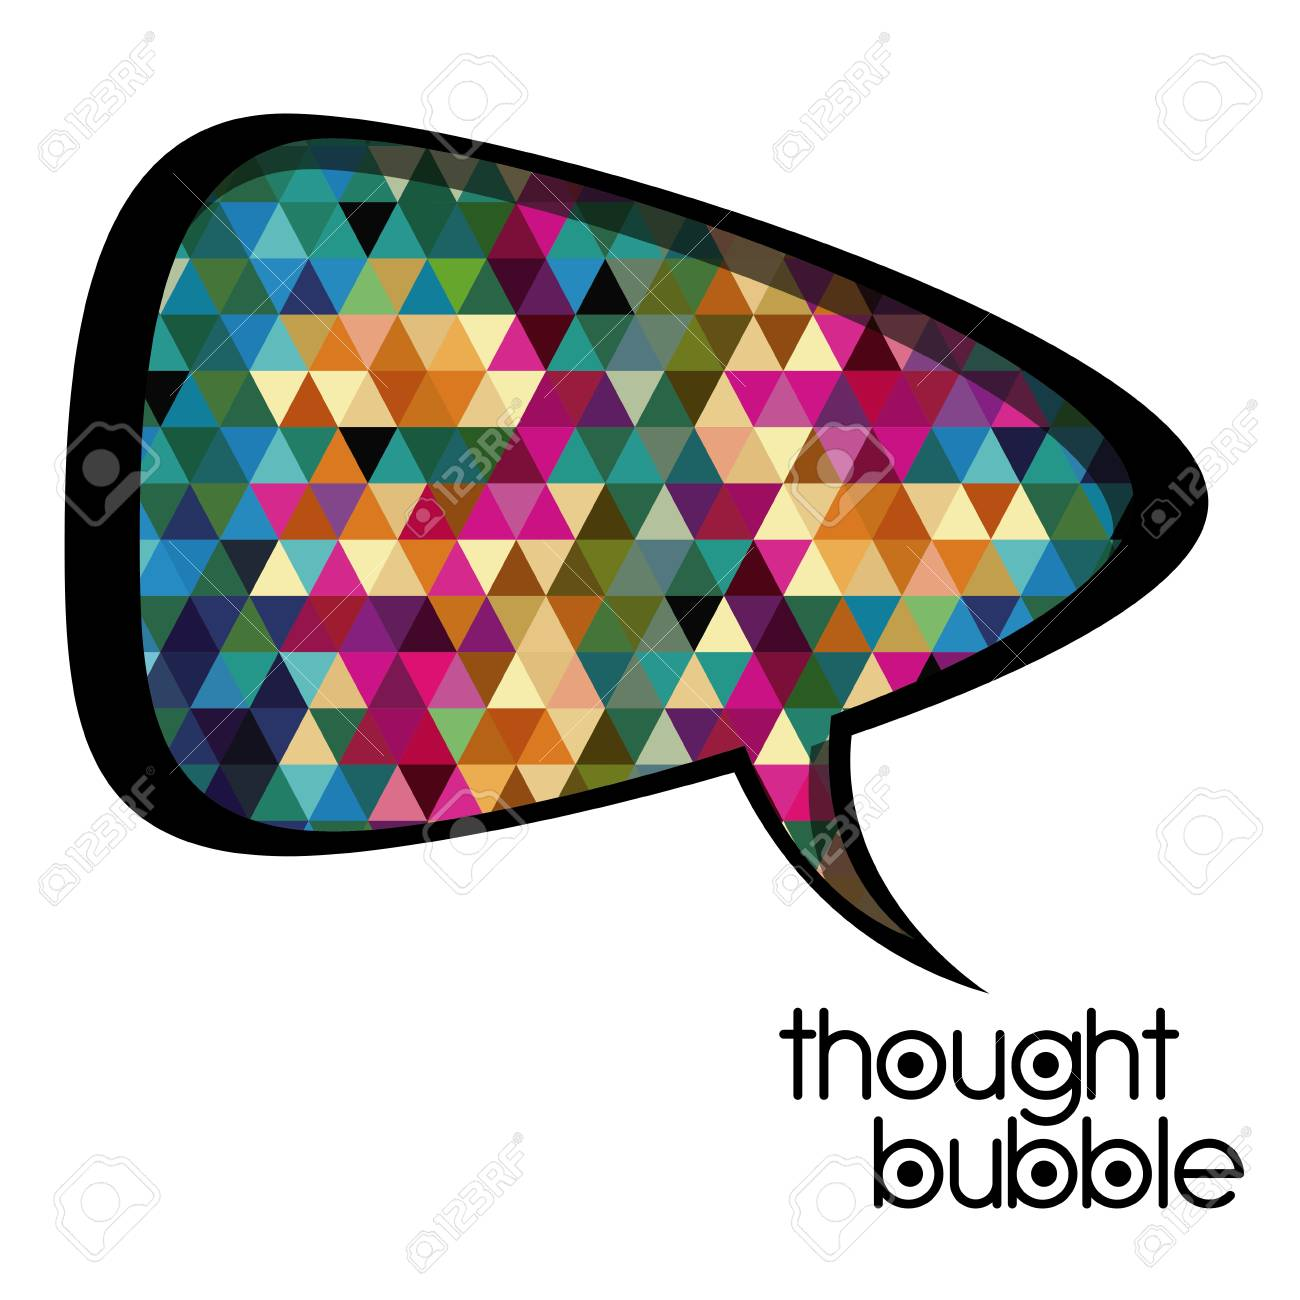 thought bubble over white background vector illustration Stock Vector - 21517540